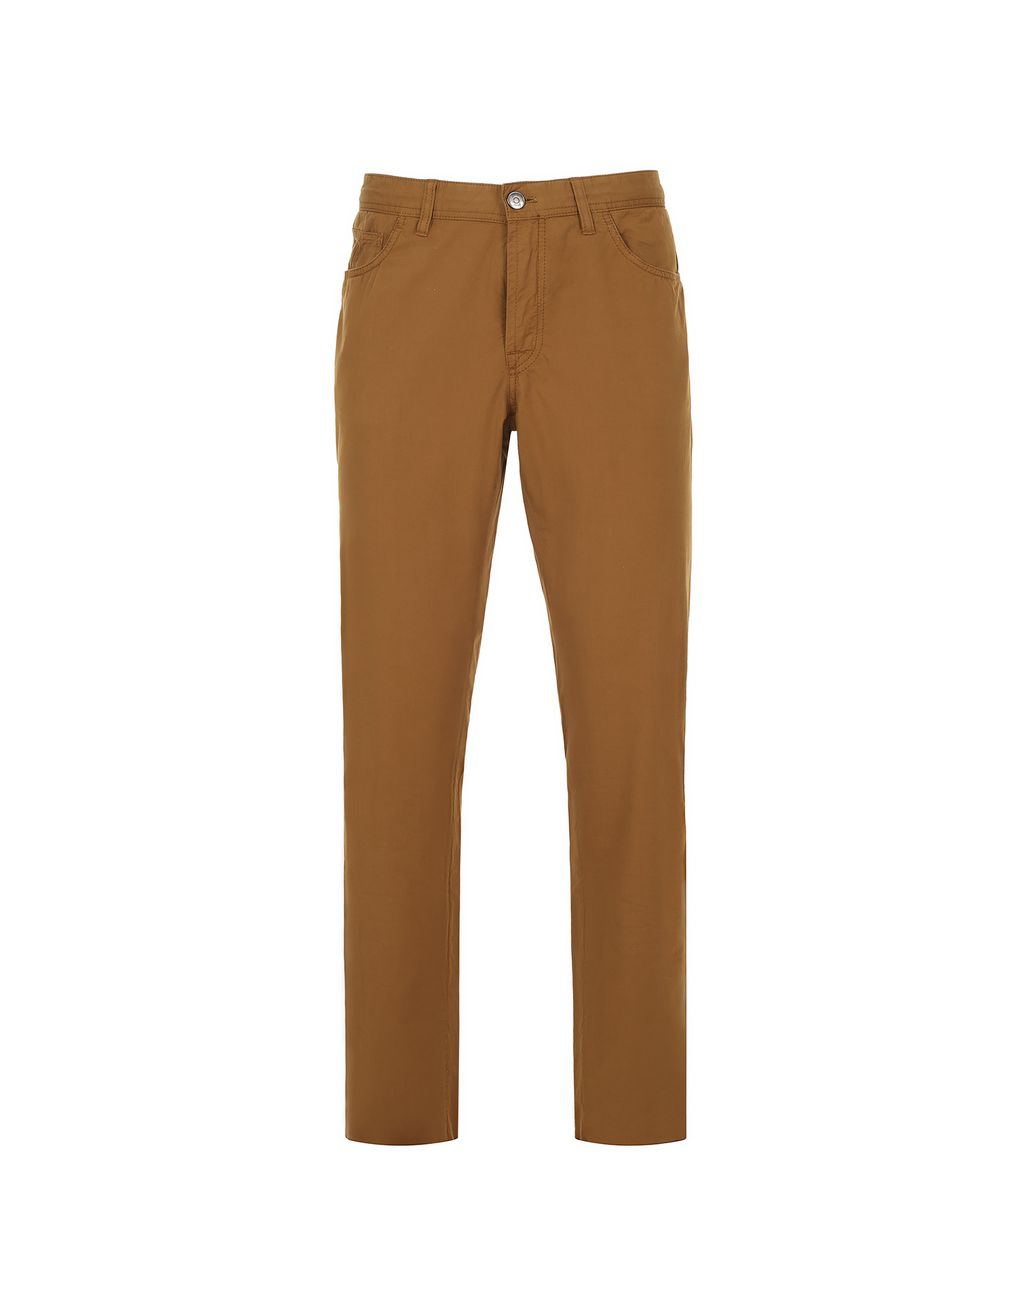 BRIONI Mustard Chamonix Five Pockets Trousers  Trousers Man f